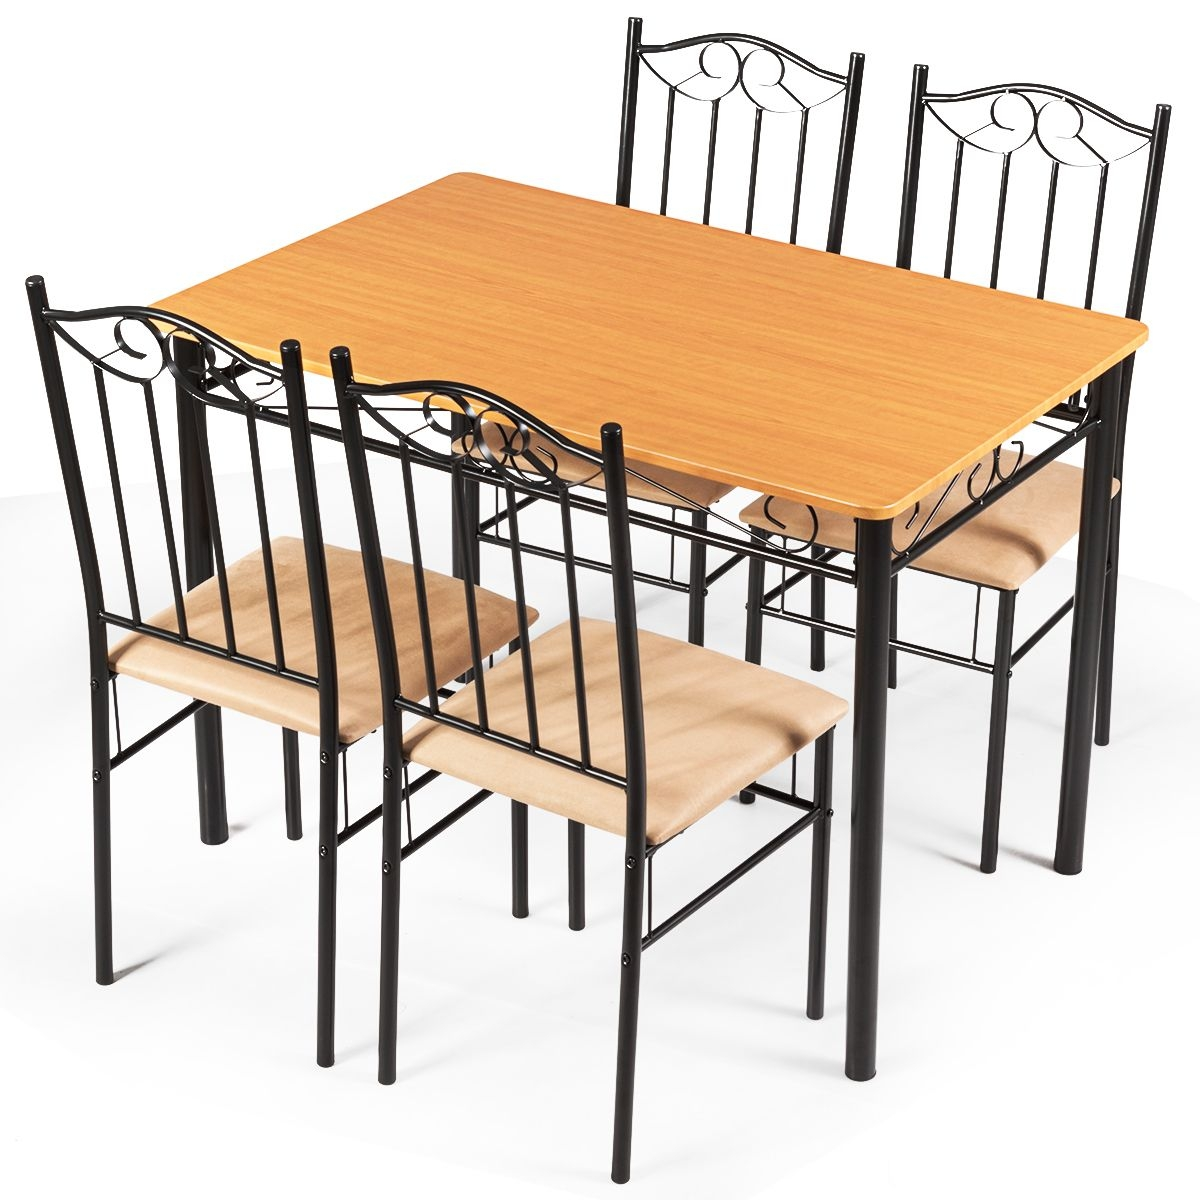 5 Pc Dining Set Wood Metal Table And 4 Chairs Kitchen Breakfast Furniture New  Walmart Canada